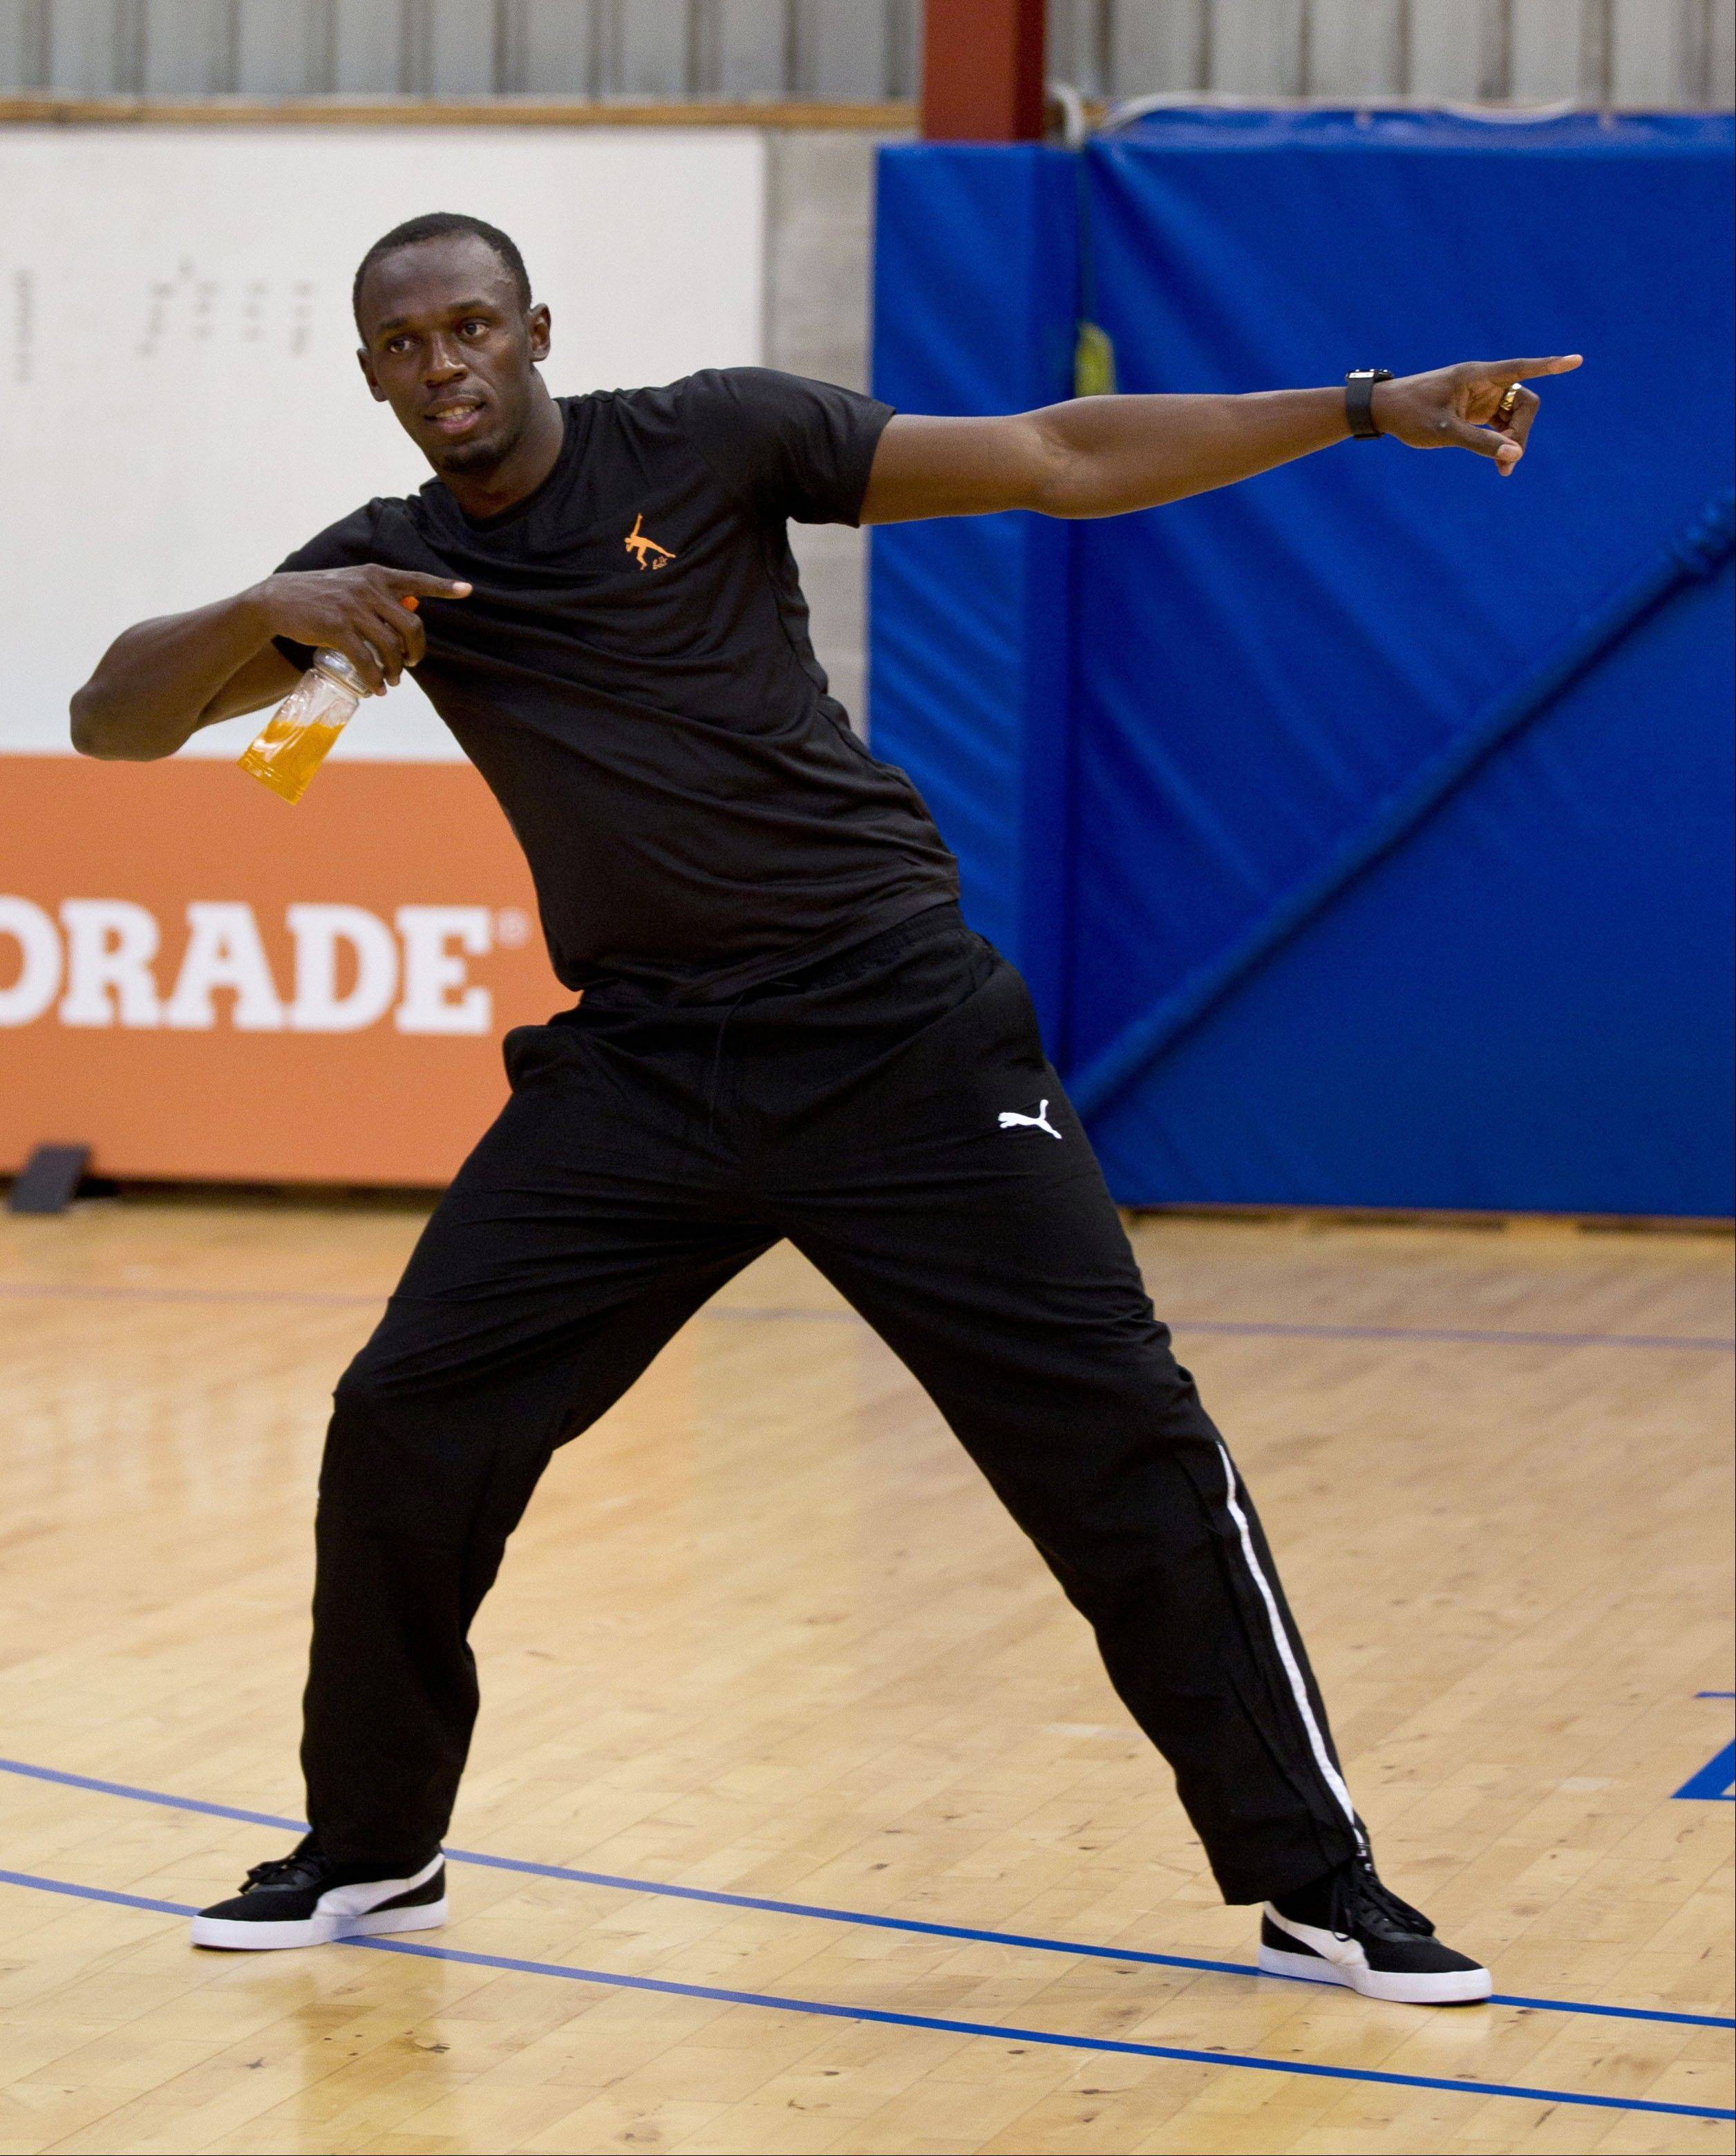 London Olympics champion Usain Bolt does a traditional challenge dance during the Breakers� basketball team event at their training facility at Mairangi Bay in Auckland, New Zealand, Monday, Oct 8, 2012. The legendary Jamaican sprinter is making a short visit to New Zealand after holidaying in Australia.